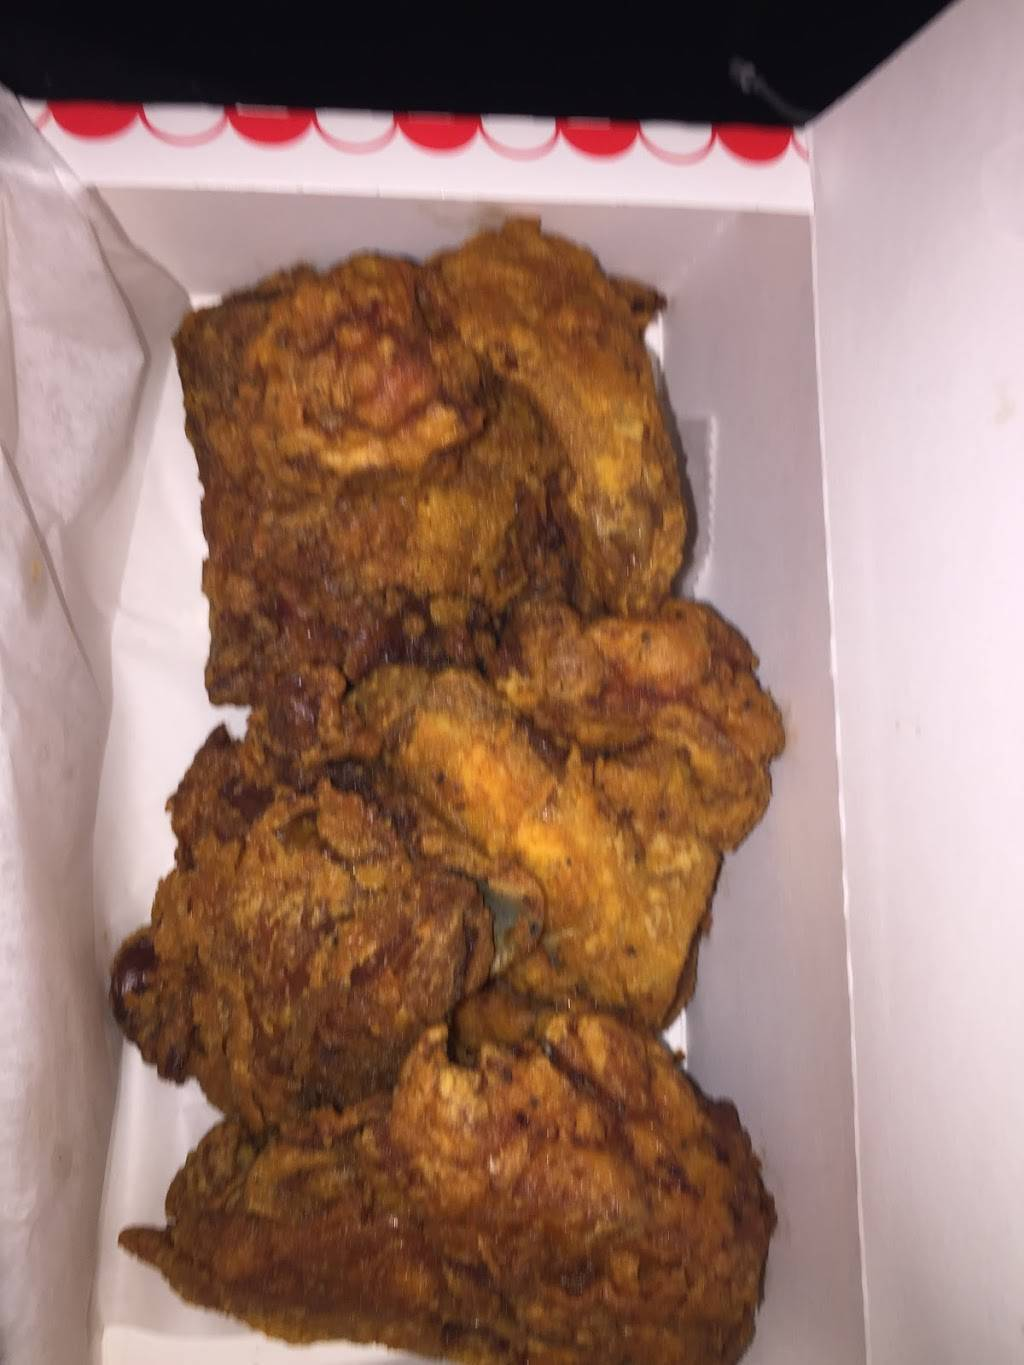 Crown Fried Chicken & Pizza | meal delivery | 3402 Church Ave, Brooklyn, NY 11203, USA | 7184843377 OR +1 718-484-3377